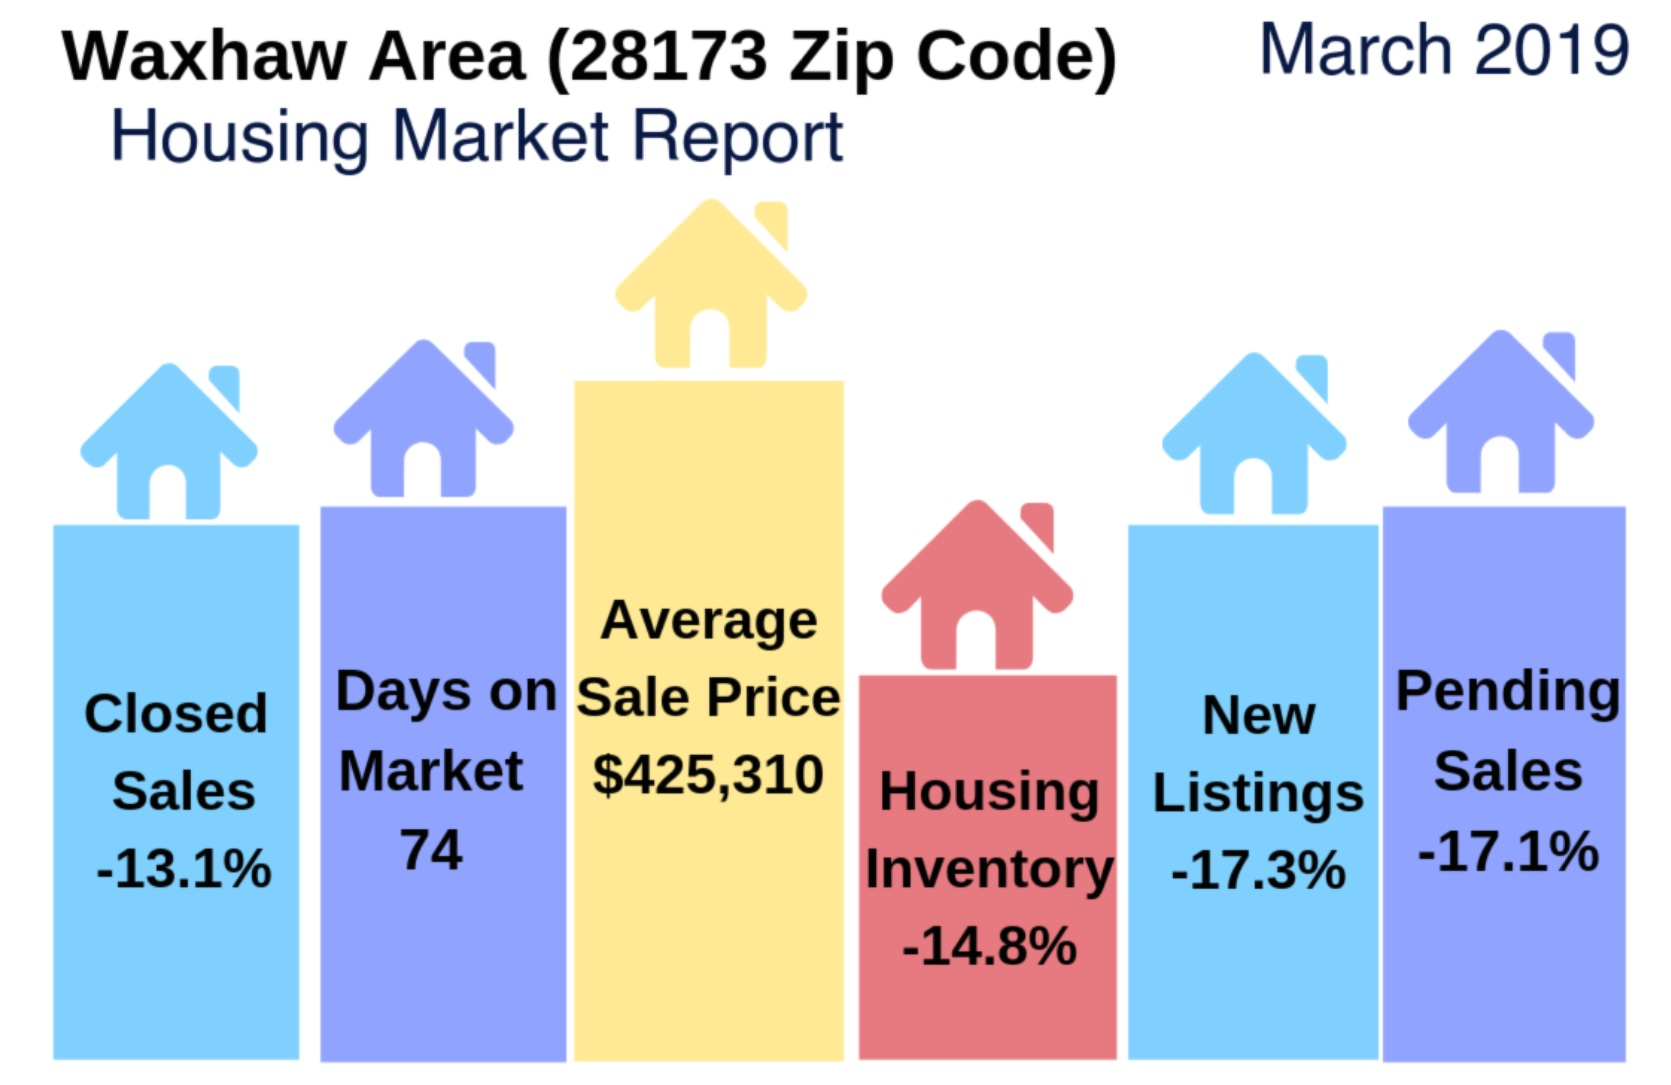 Waxhaw Area (28173 Zip Code) Housing Market Update & Video: March 2019